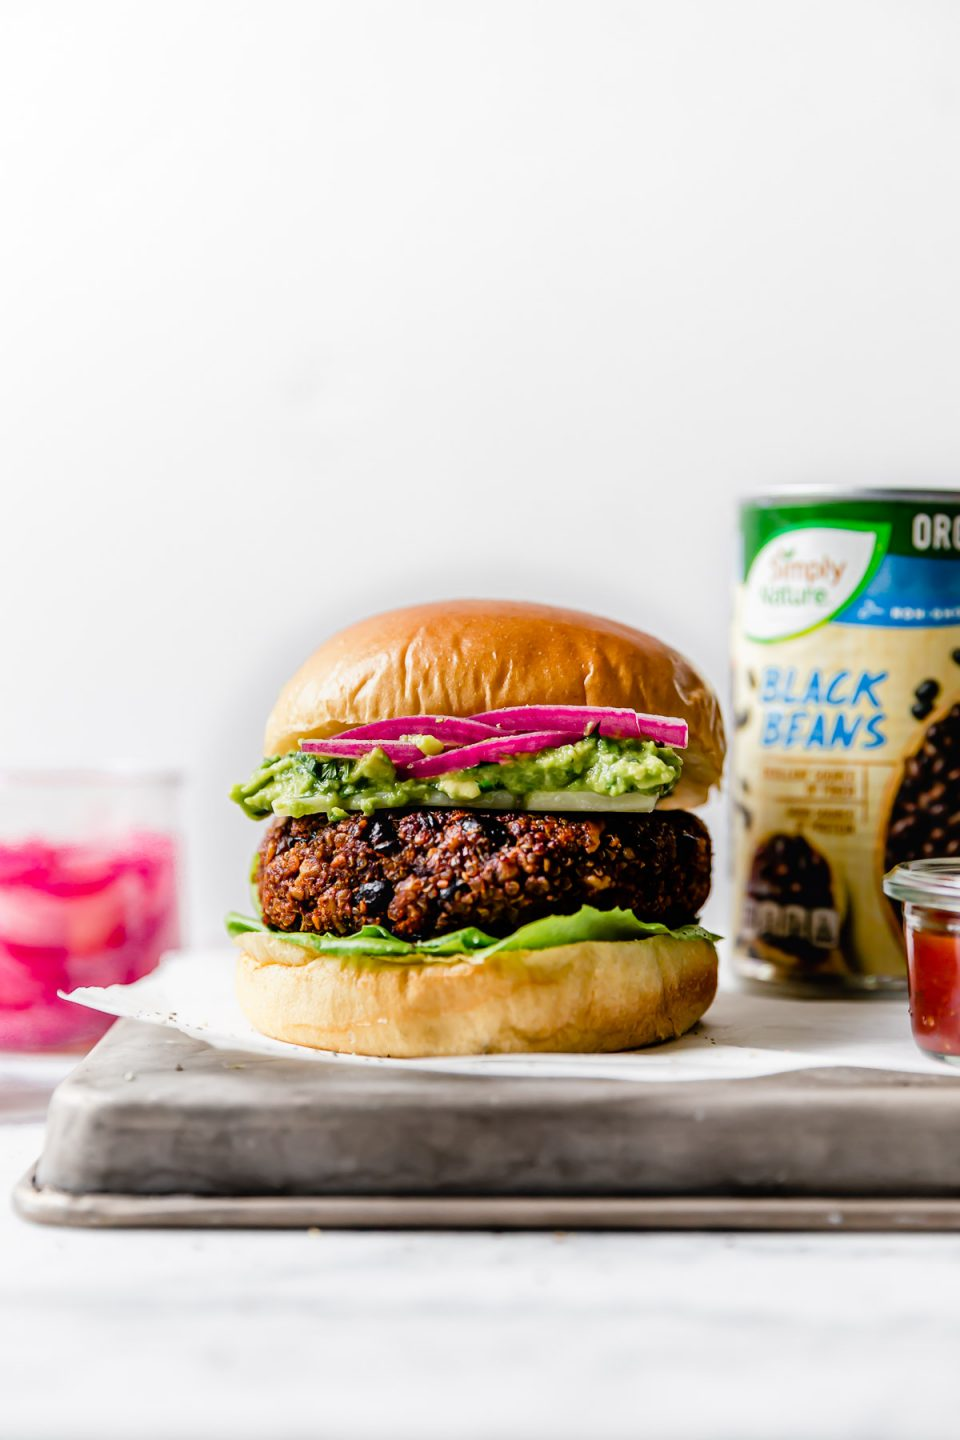 Grilled Black Bean Burgers on brioche buns, topped with lettuce, cheese, guacamole & pickled red onion. The burgers are placed on a small metal tray, with jars of guacamole & pickled red onions & a can of Simply Nature Organic Black Beans in the background.